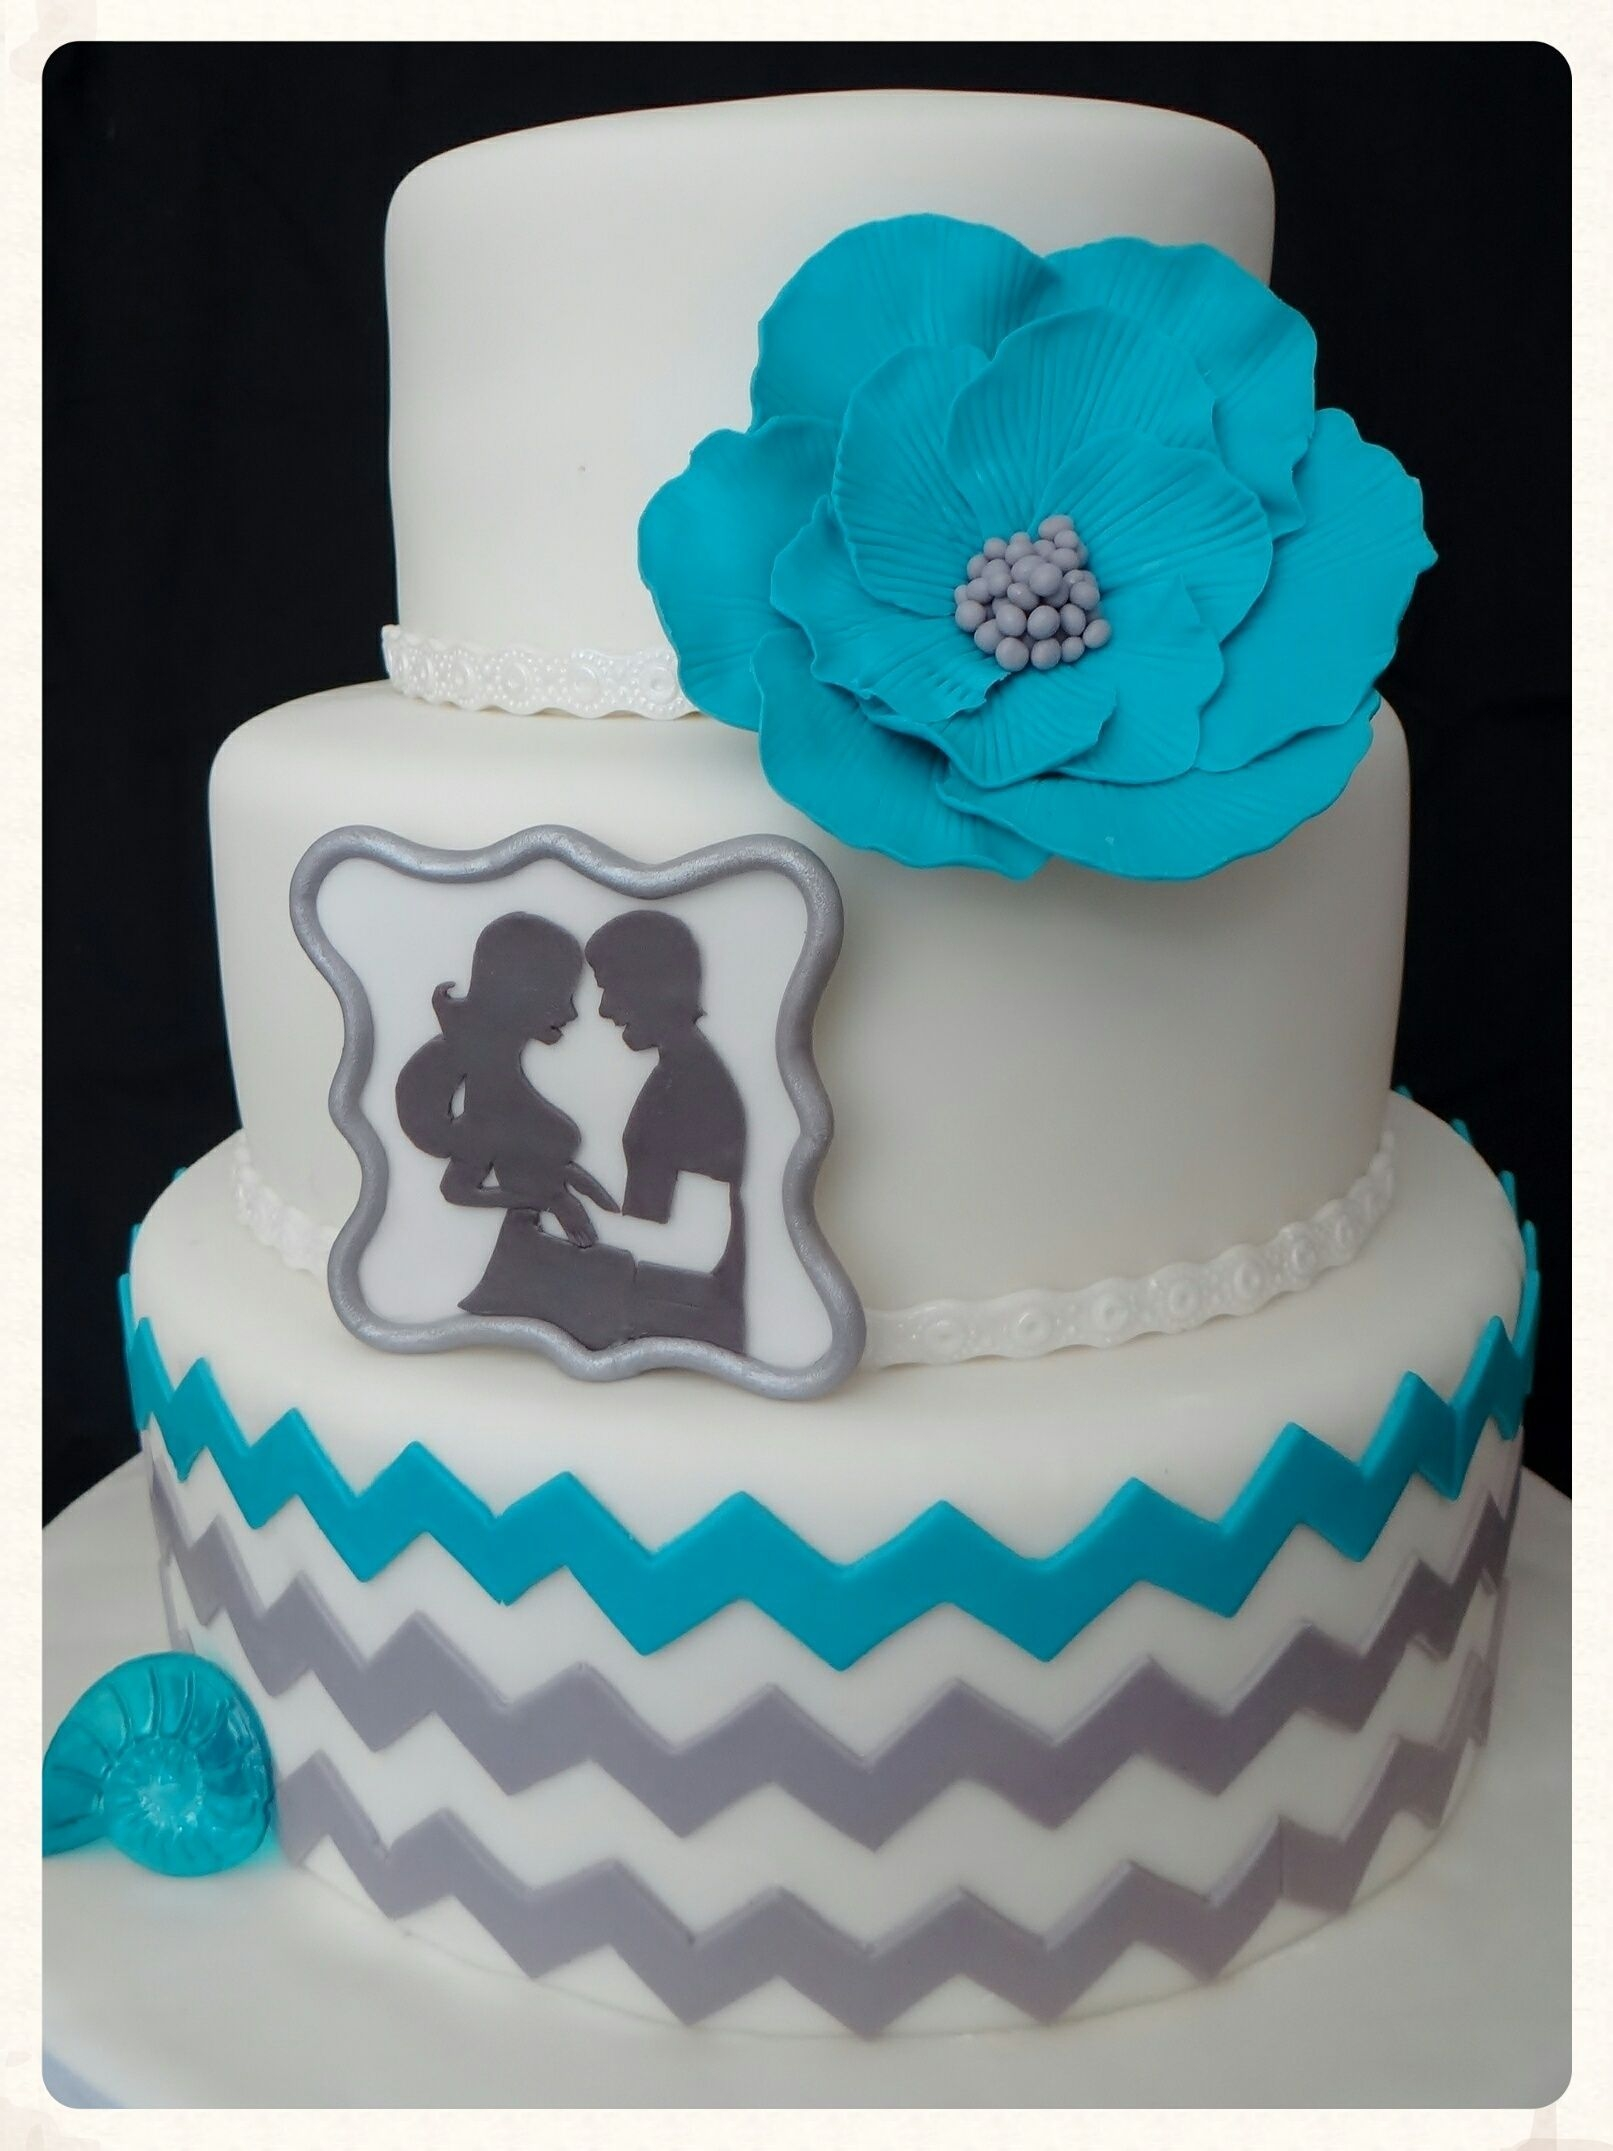 Clean Simple Cake Design With Jessica Harris : Techniques Used Were From Craftys Clean And Simple Cake ...